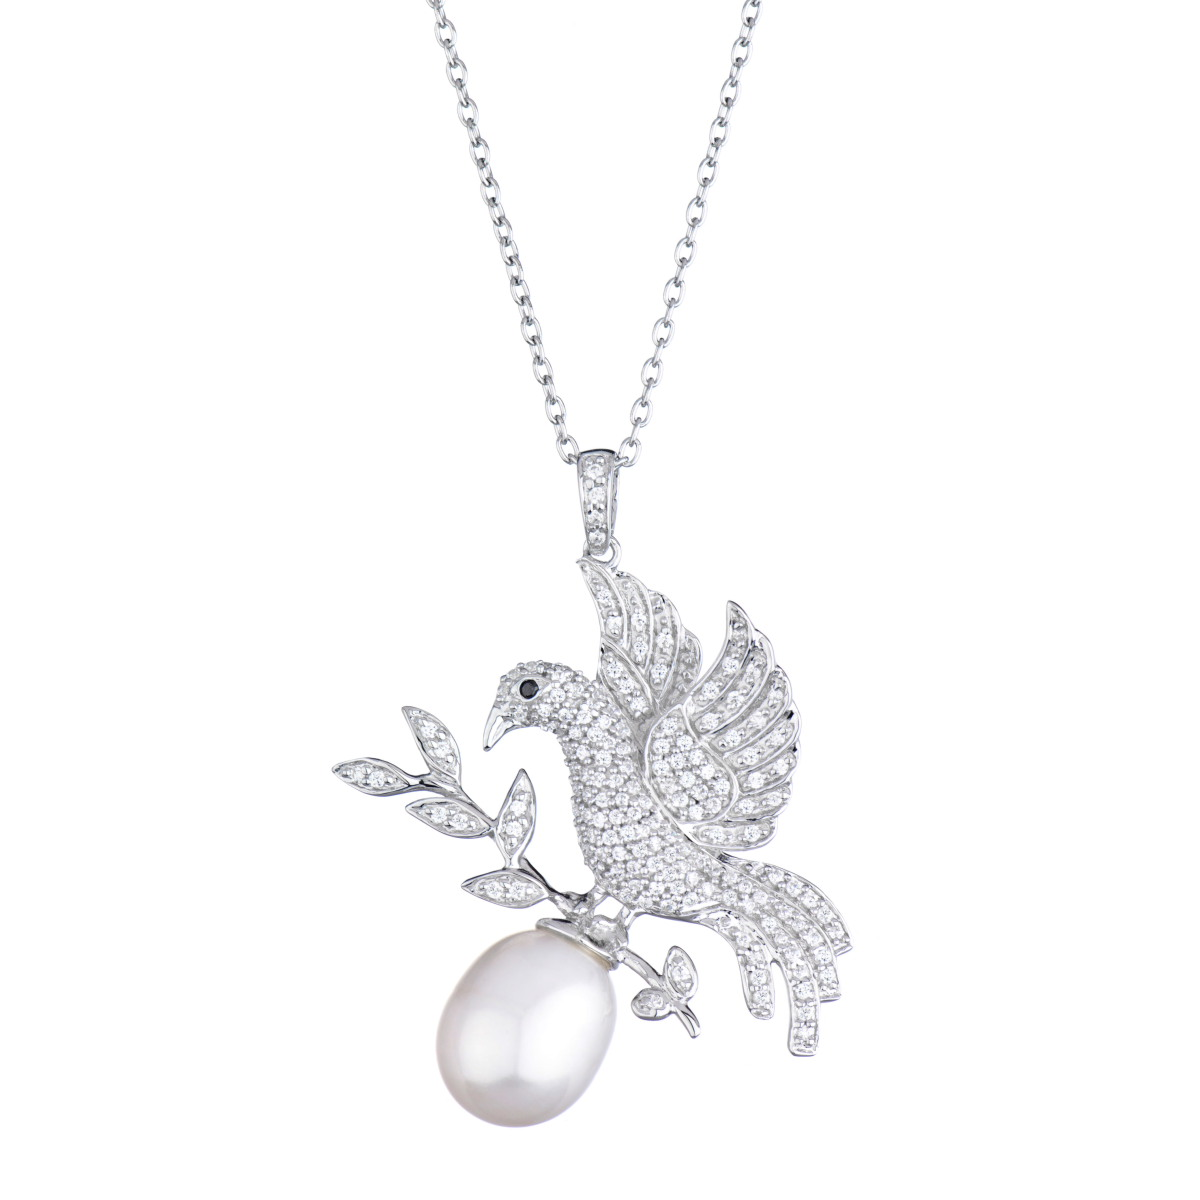 Pendant necklace all collections of necklace illa pendant necklace genuine stone bird pearl necklace mozeypictures Image collections